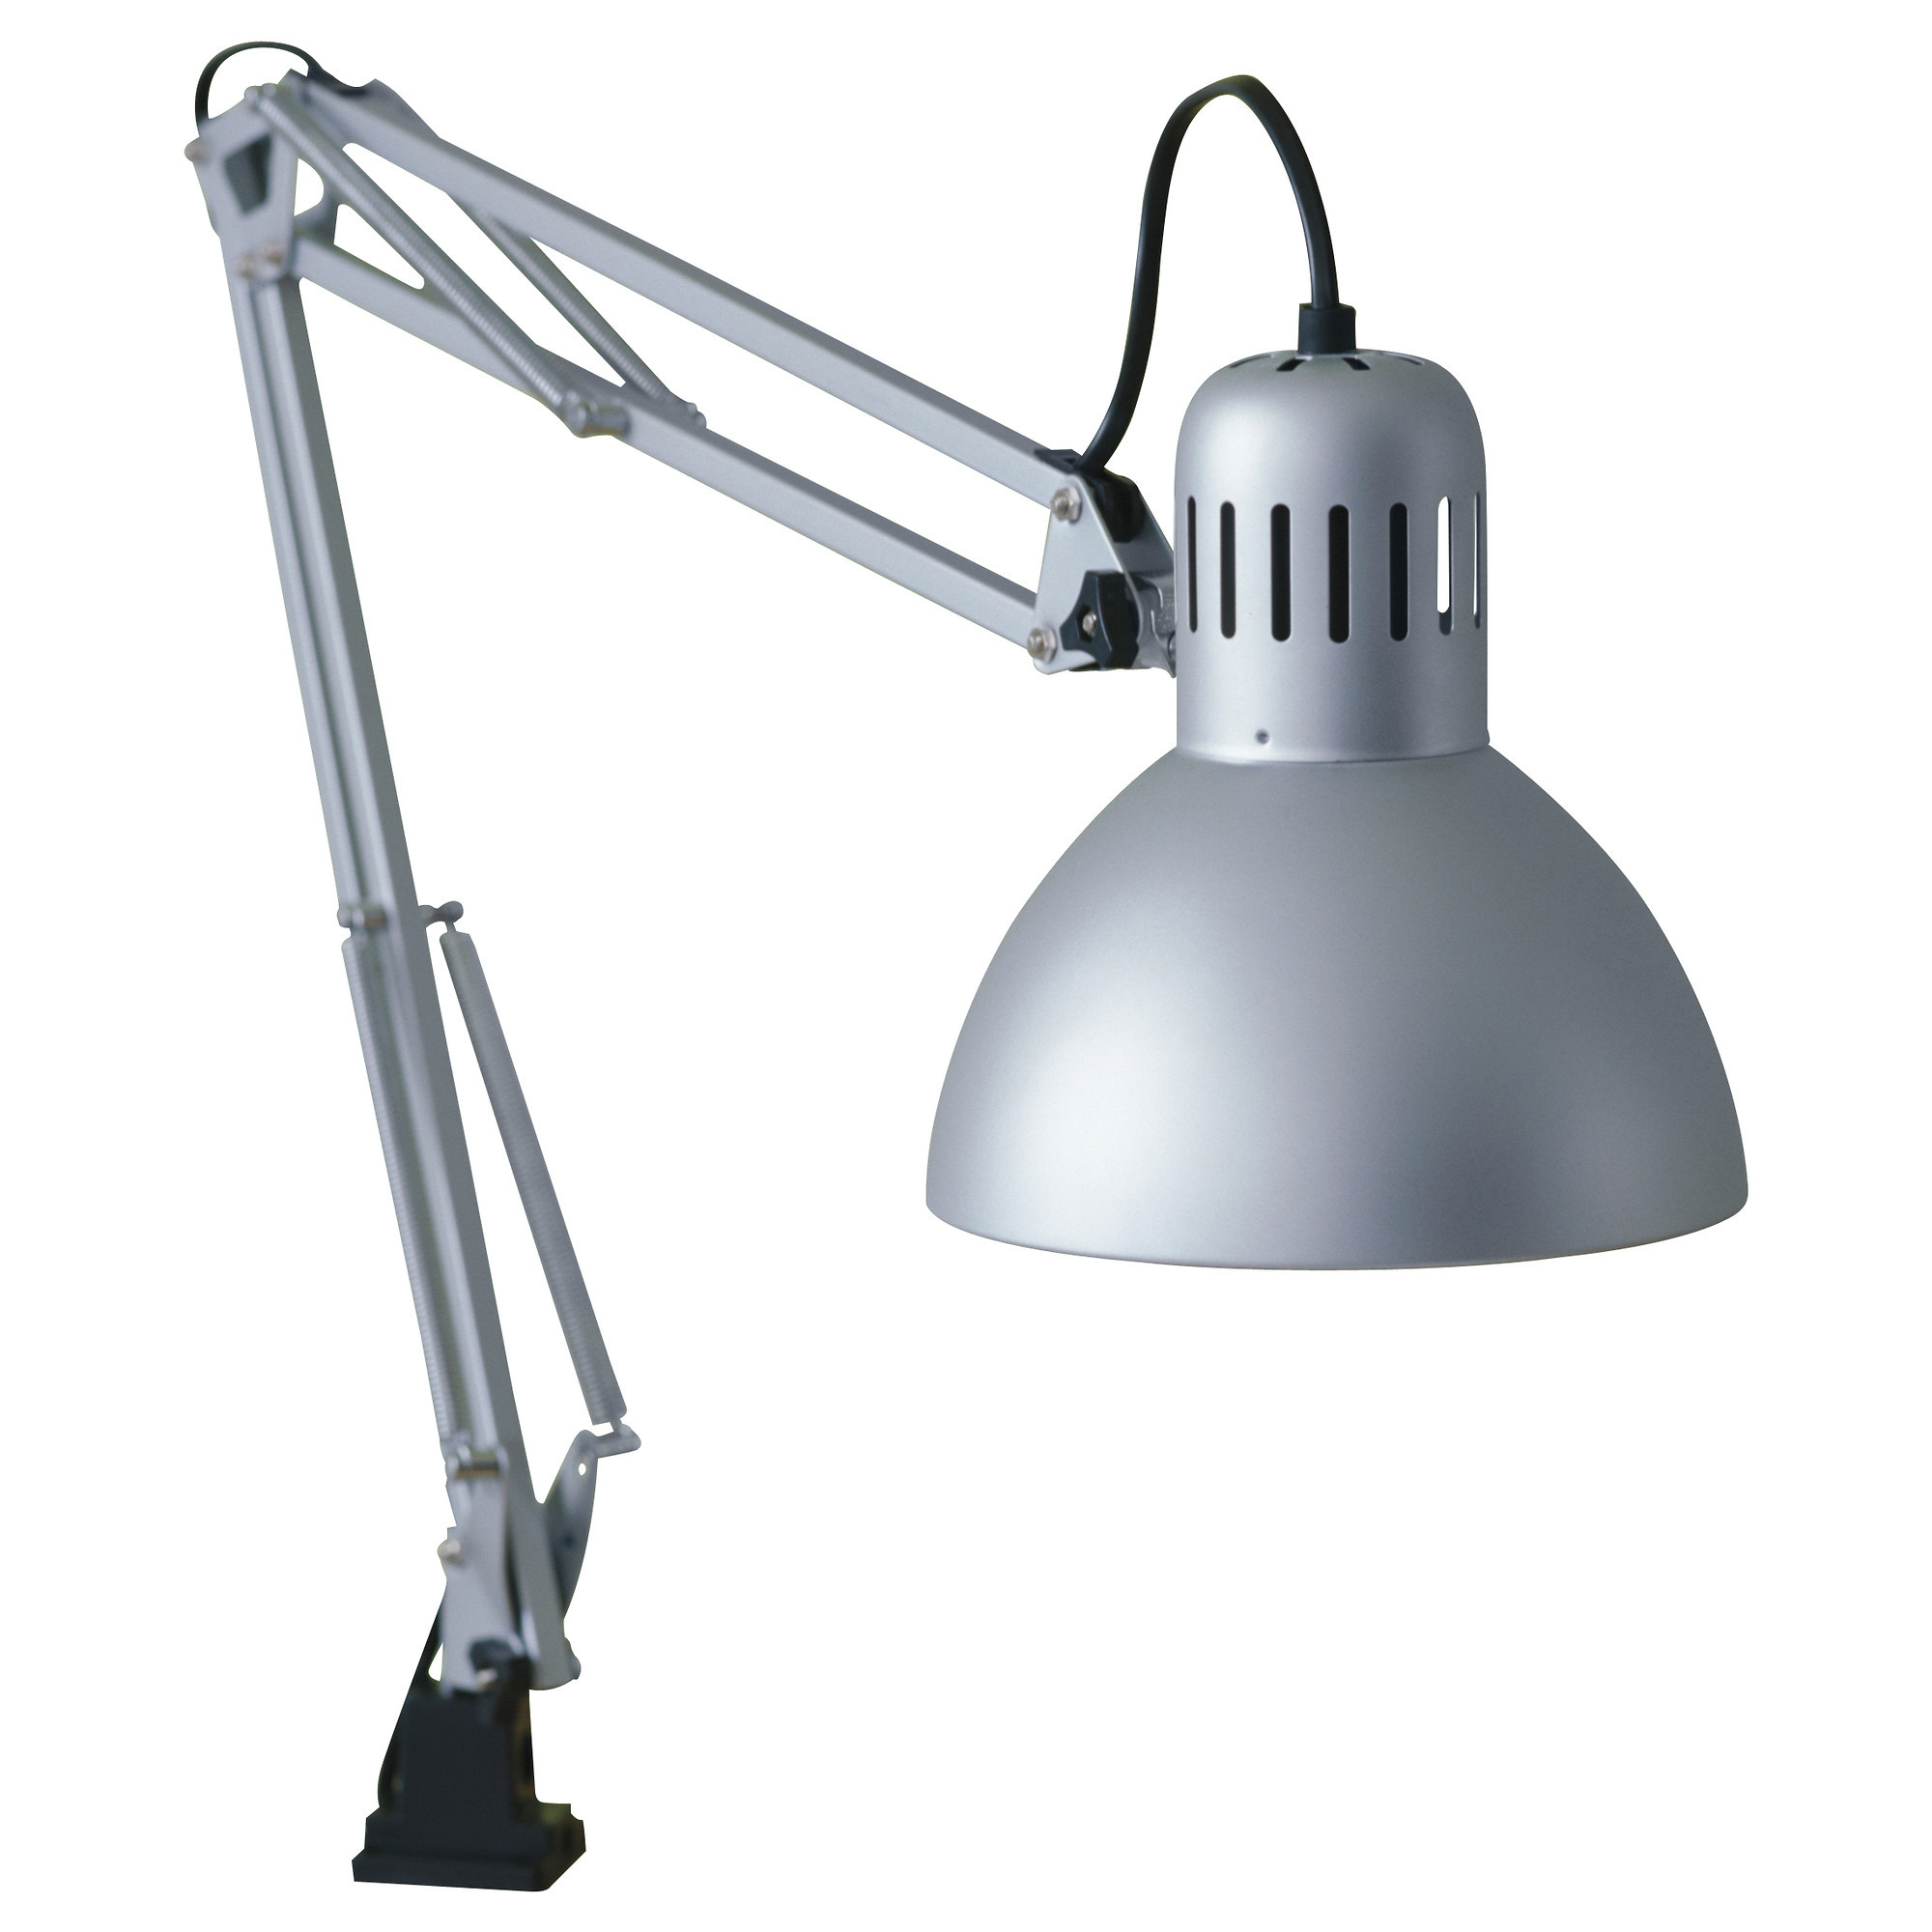 Best ideas about Desk Lamp Ikea . Save or Pin Ikea Desk Lamp Bulb Now.